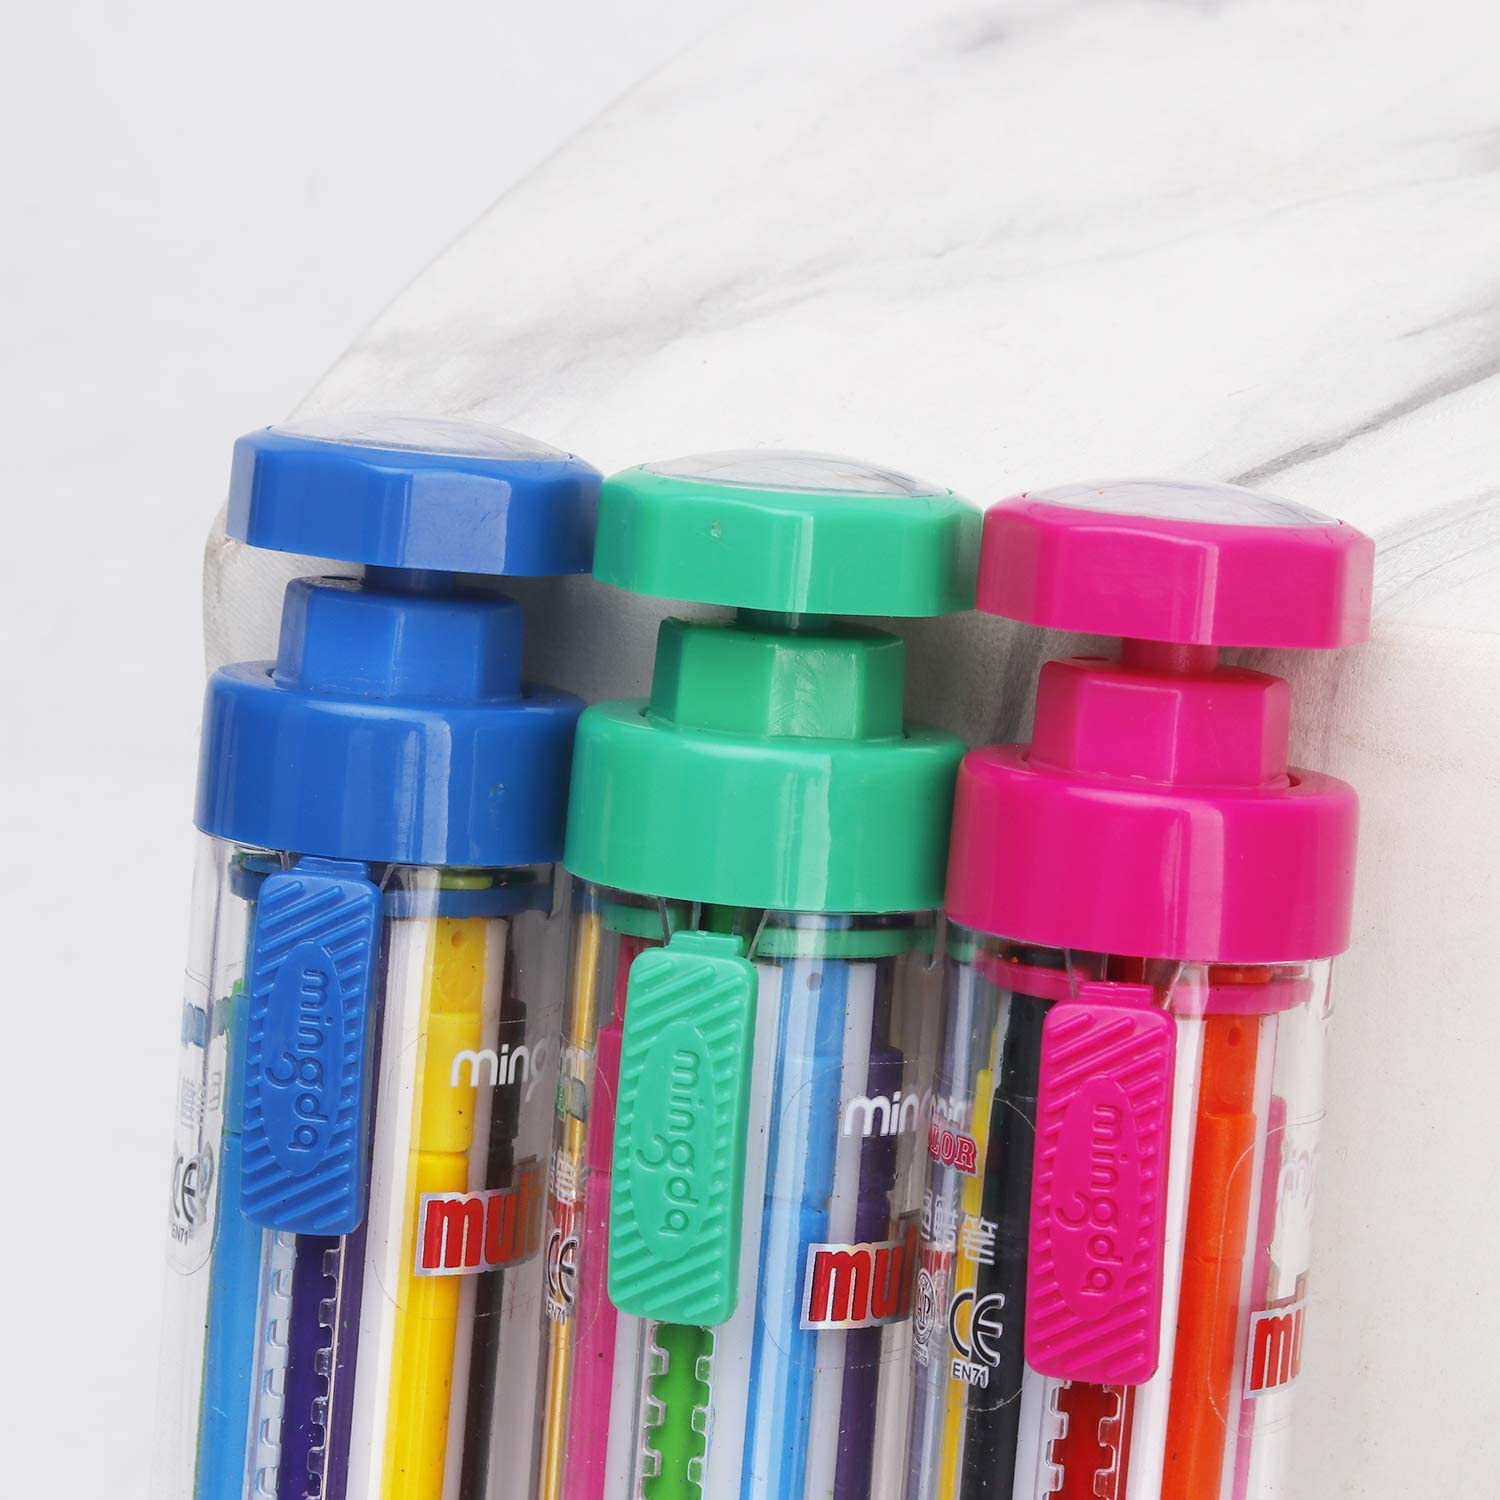 Blue ZUYGG Crayons 8 Color in One Adjustable and Rotating Design